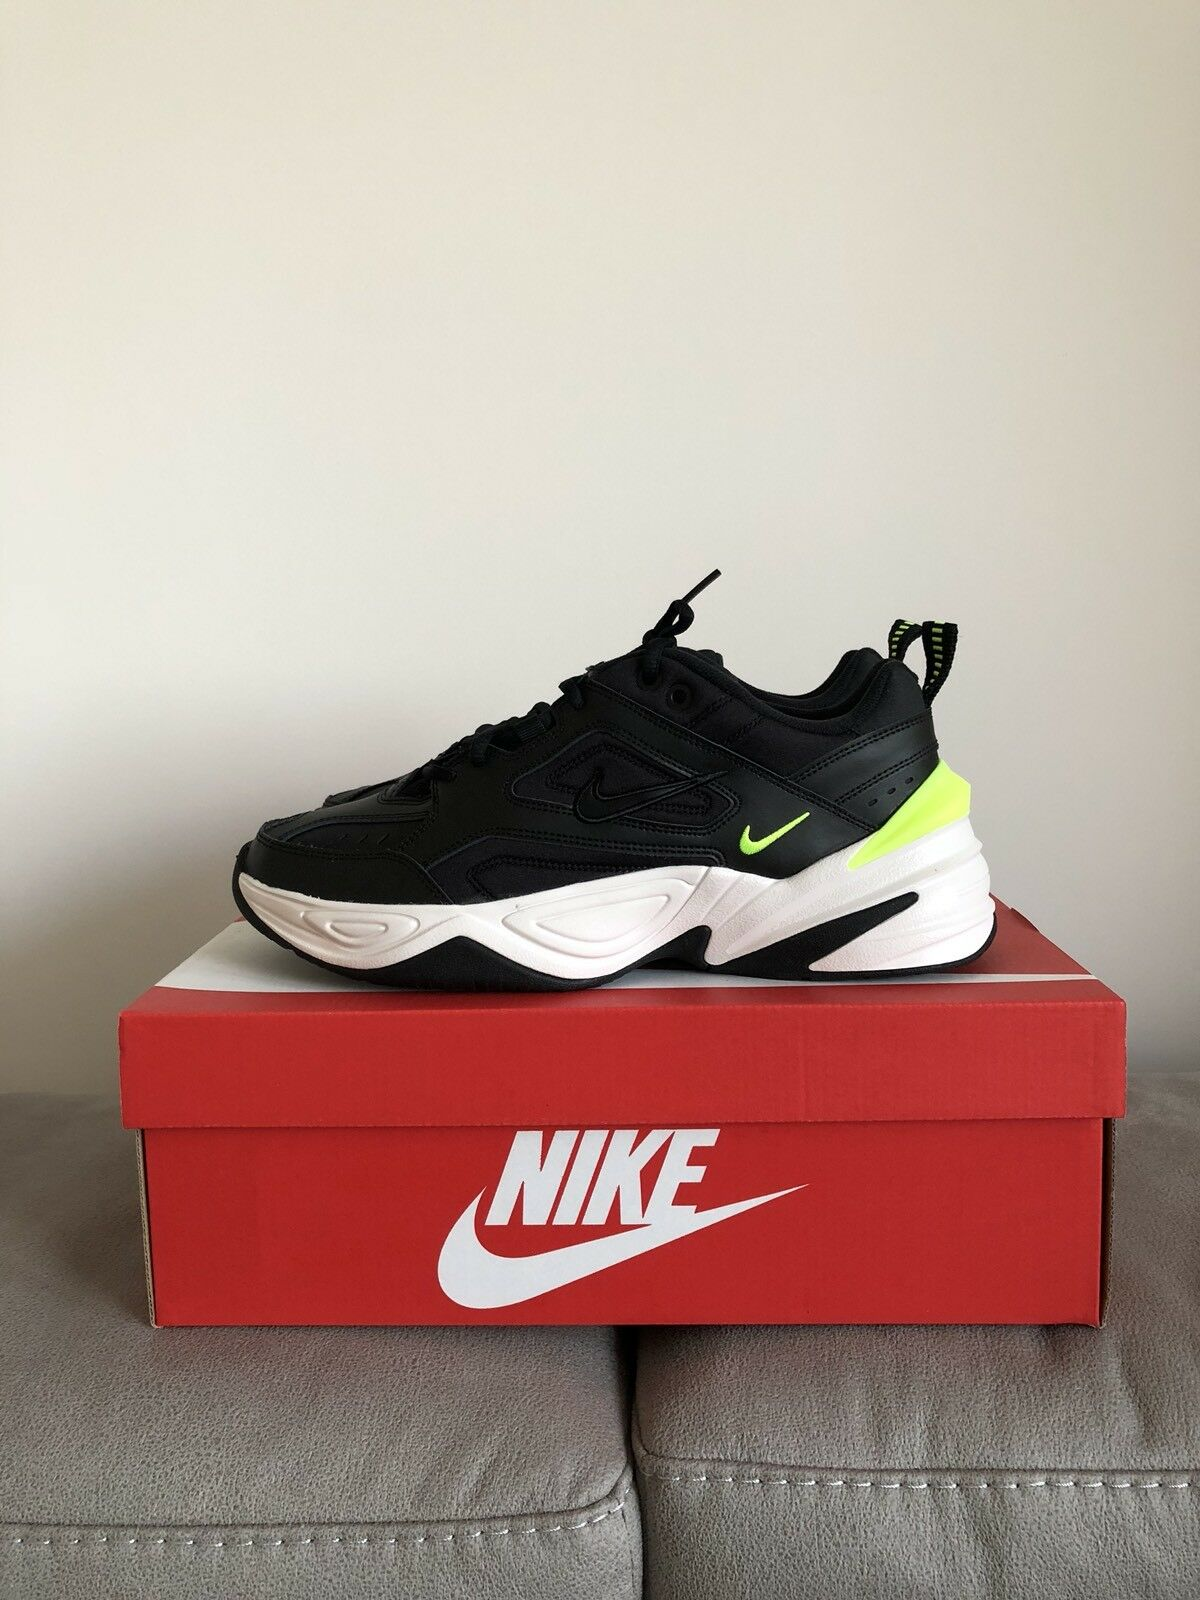 2018 Brand Authentic New Authentic Brand Nike MK2 TeknoNegro/Volt 36b429